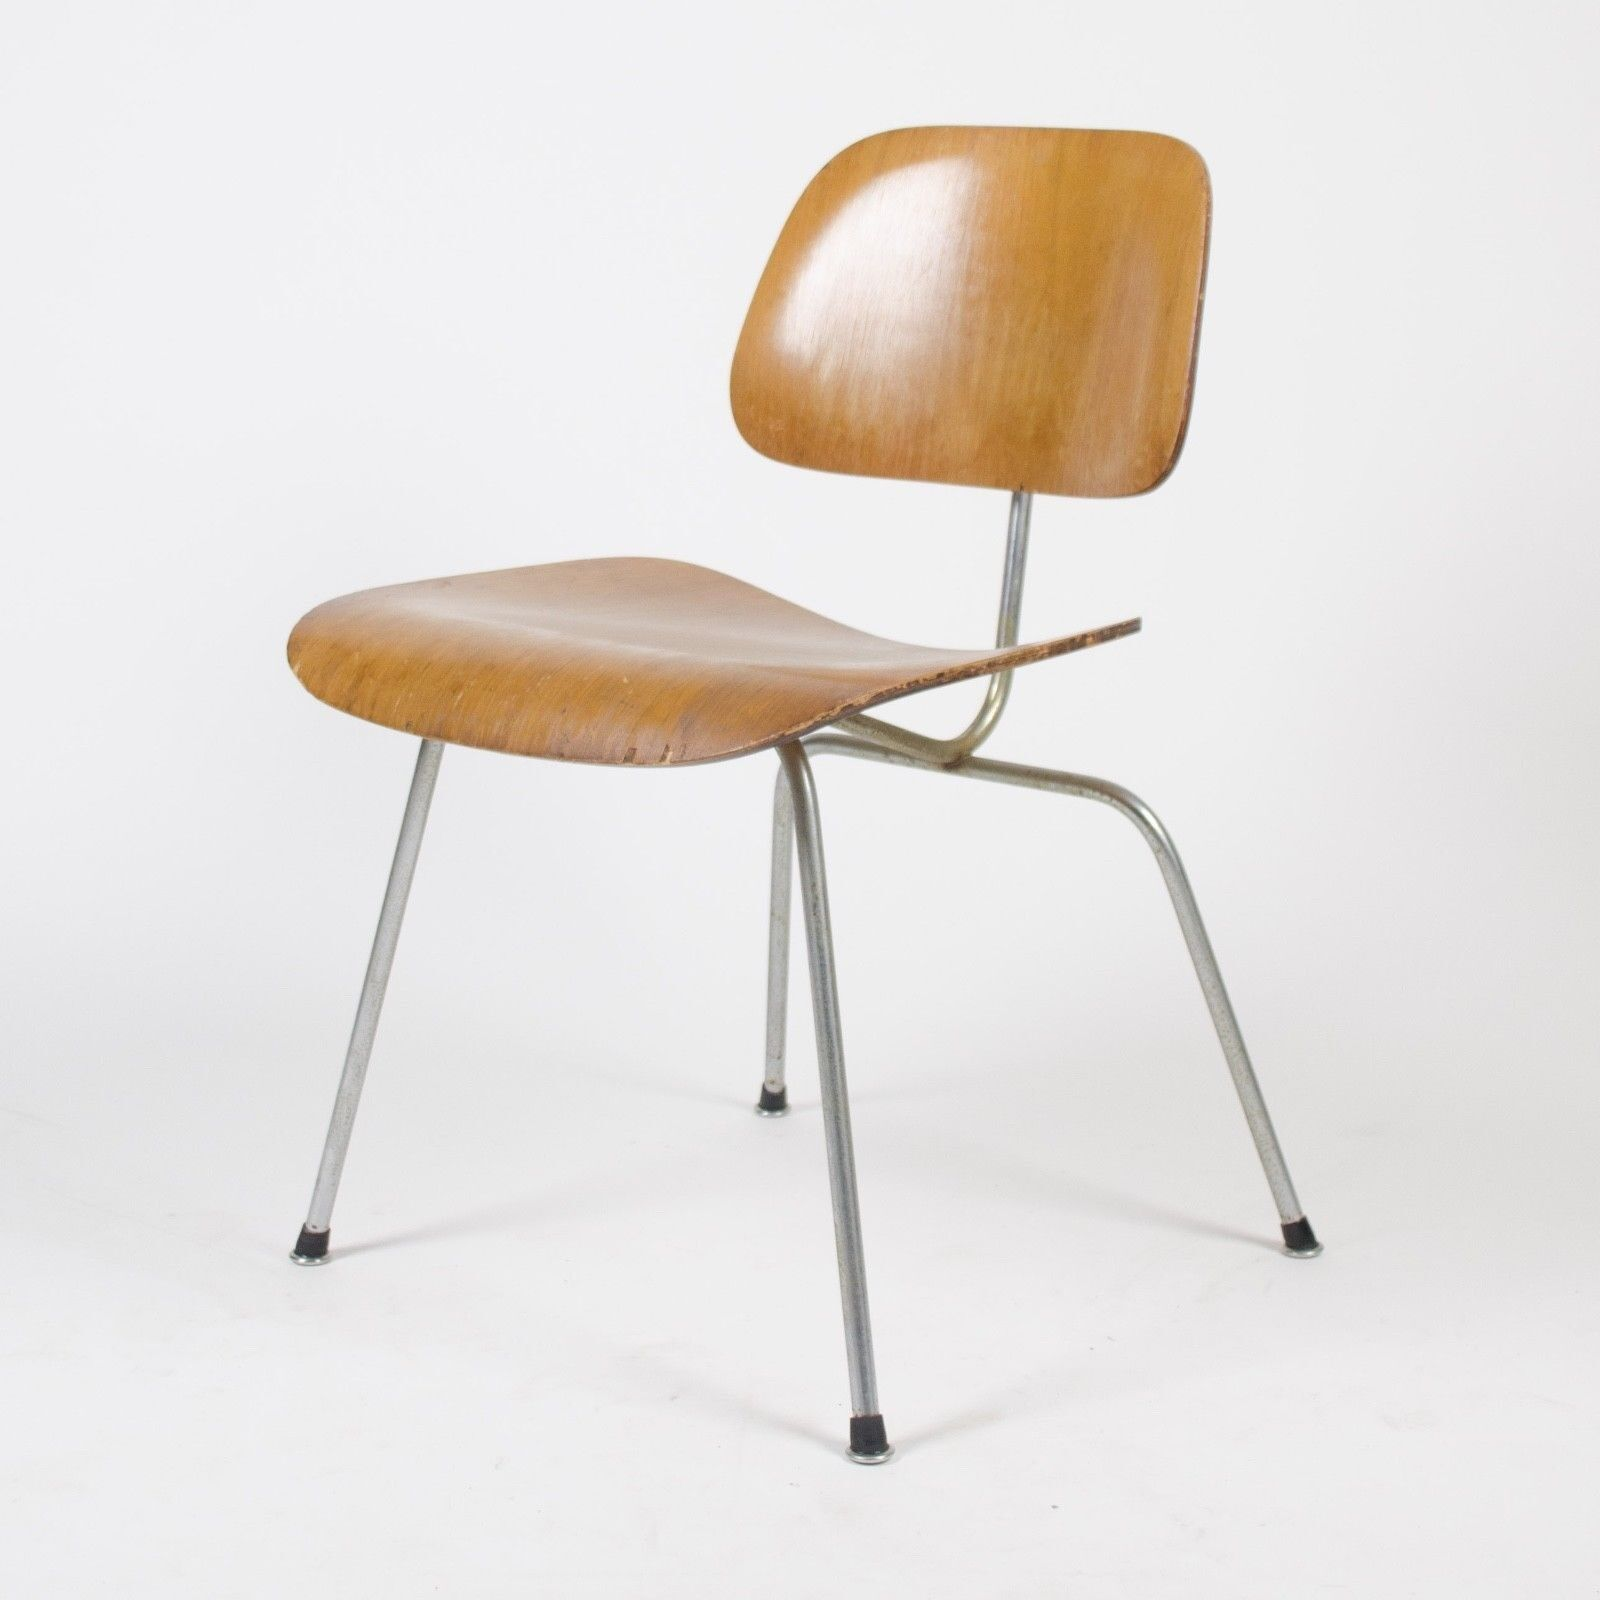 Eames Chair Herman Miller Ebay Details About Eames Herman Miller 1954 Dcm Dining Chair Calico Ash Boot Glides